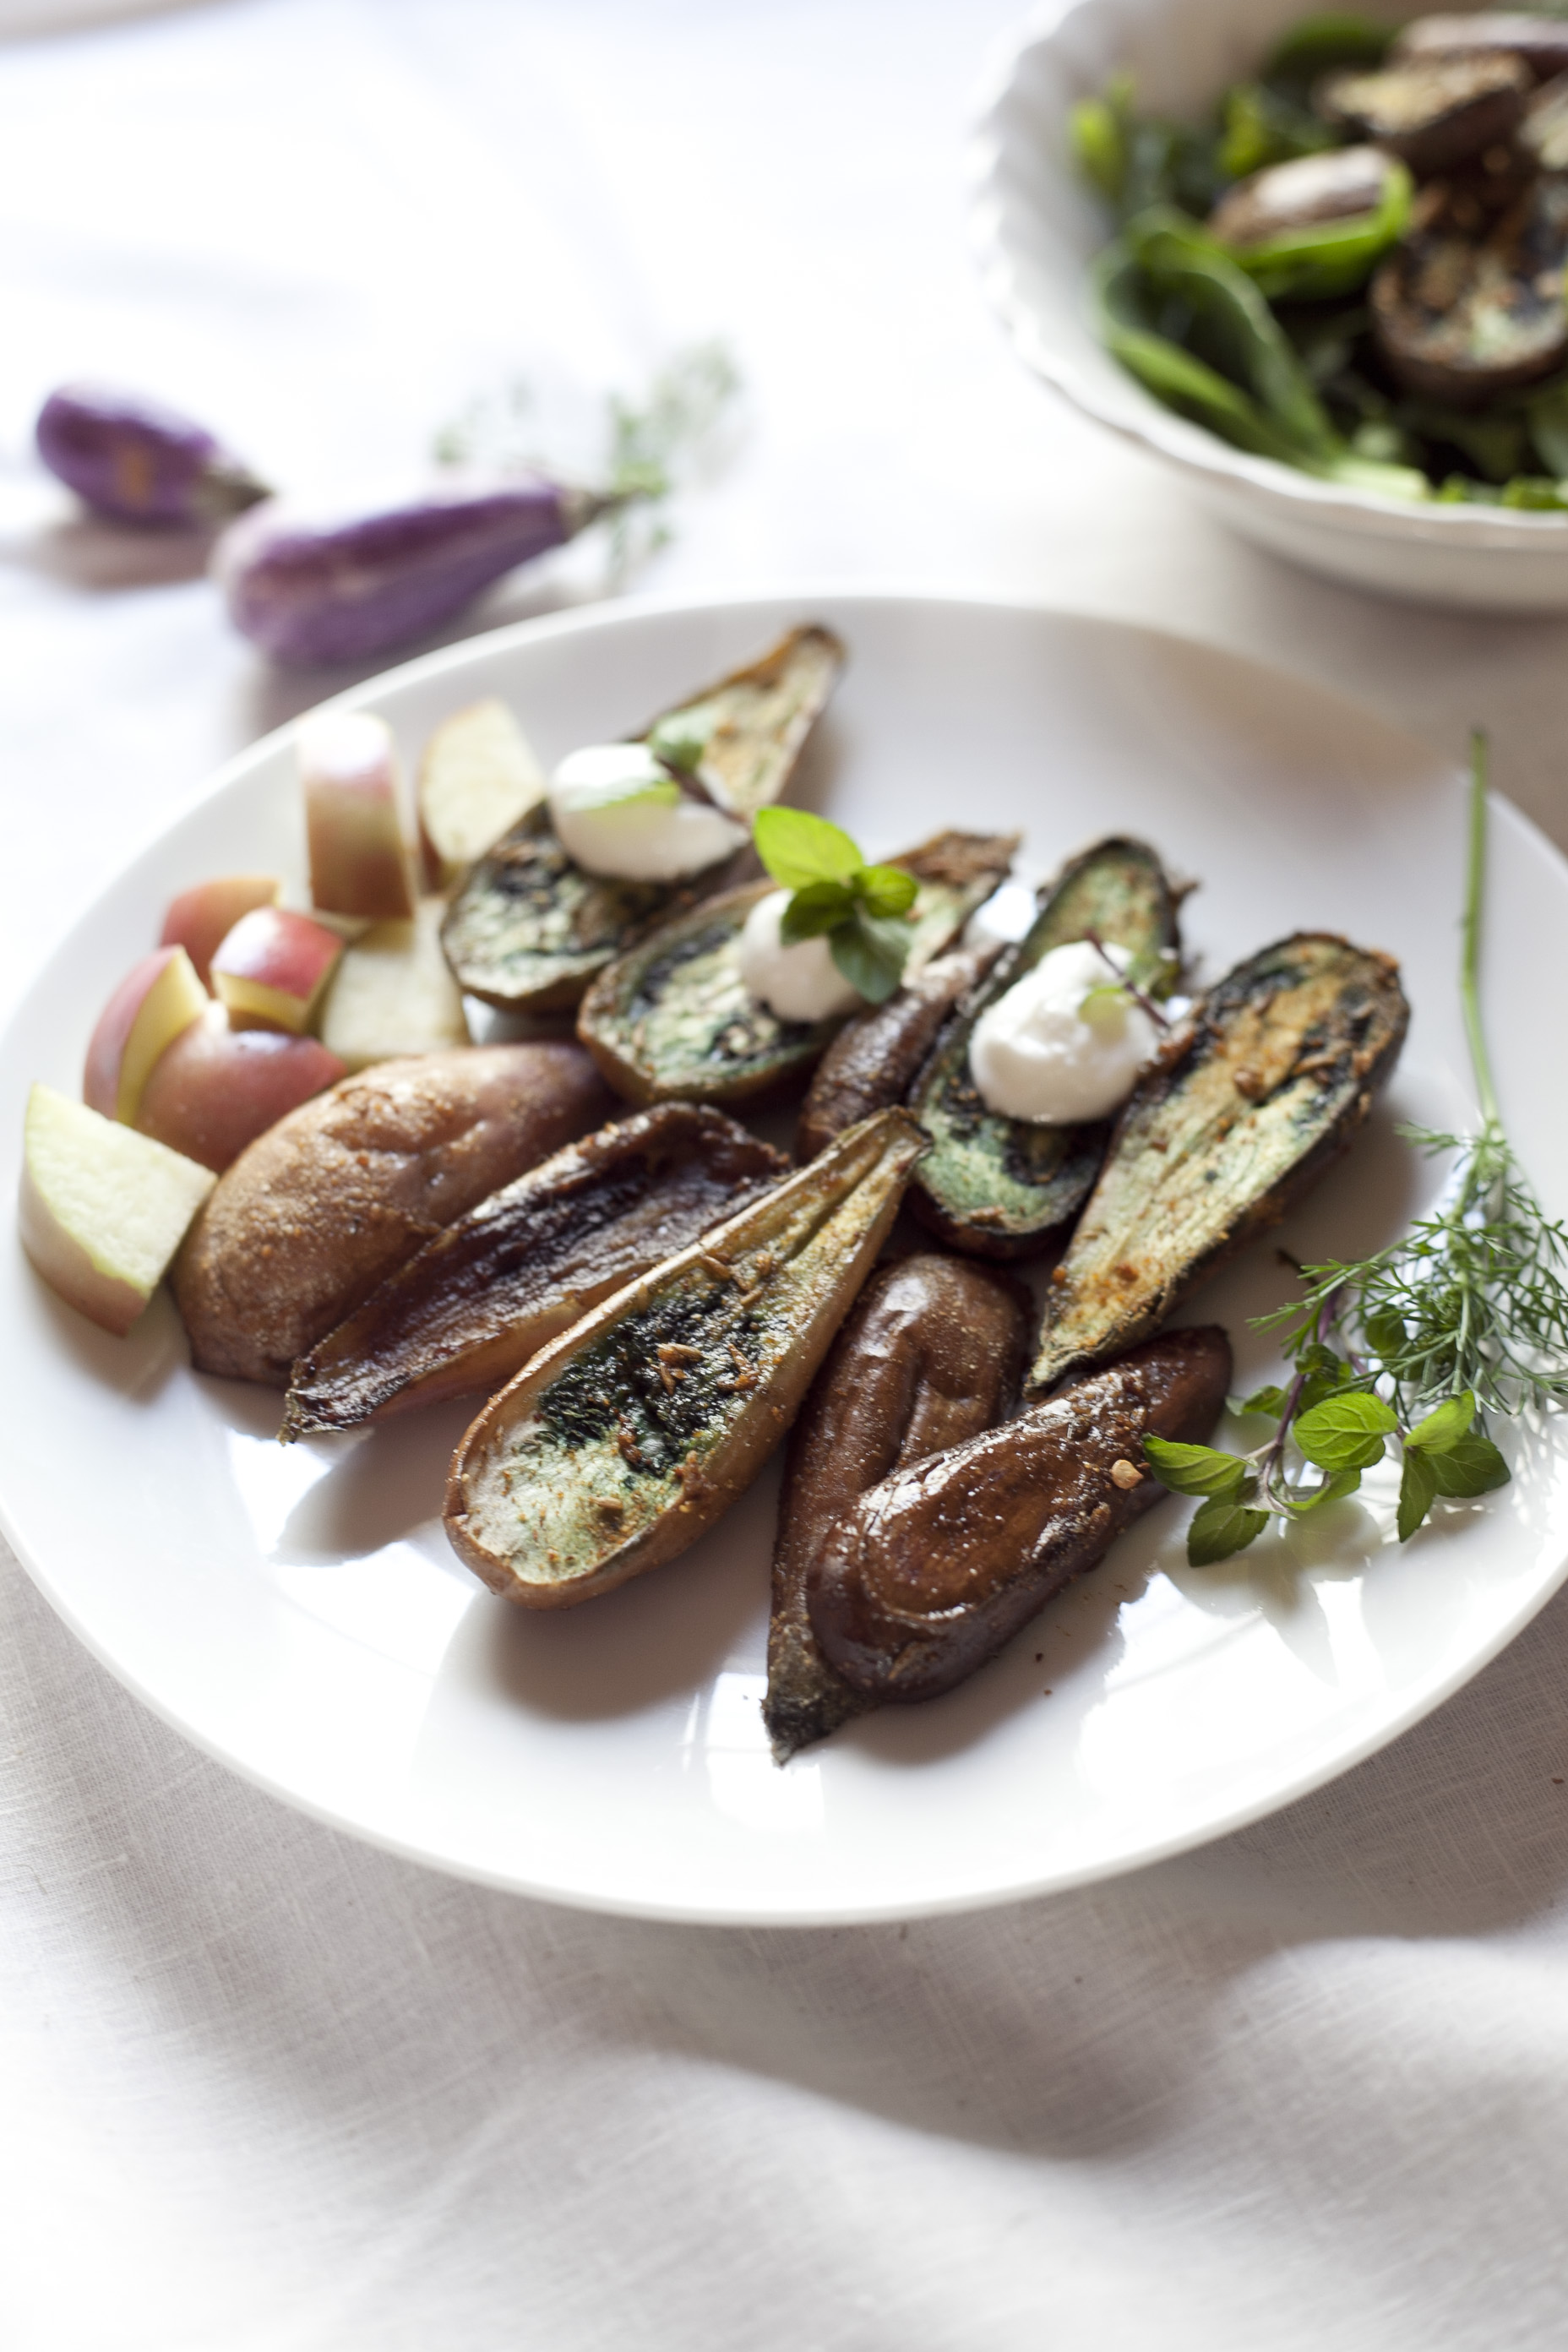 Curried Fairy Tale Eggplants